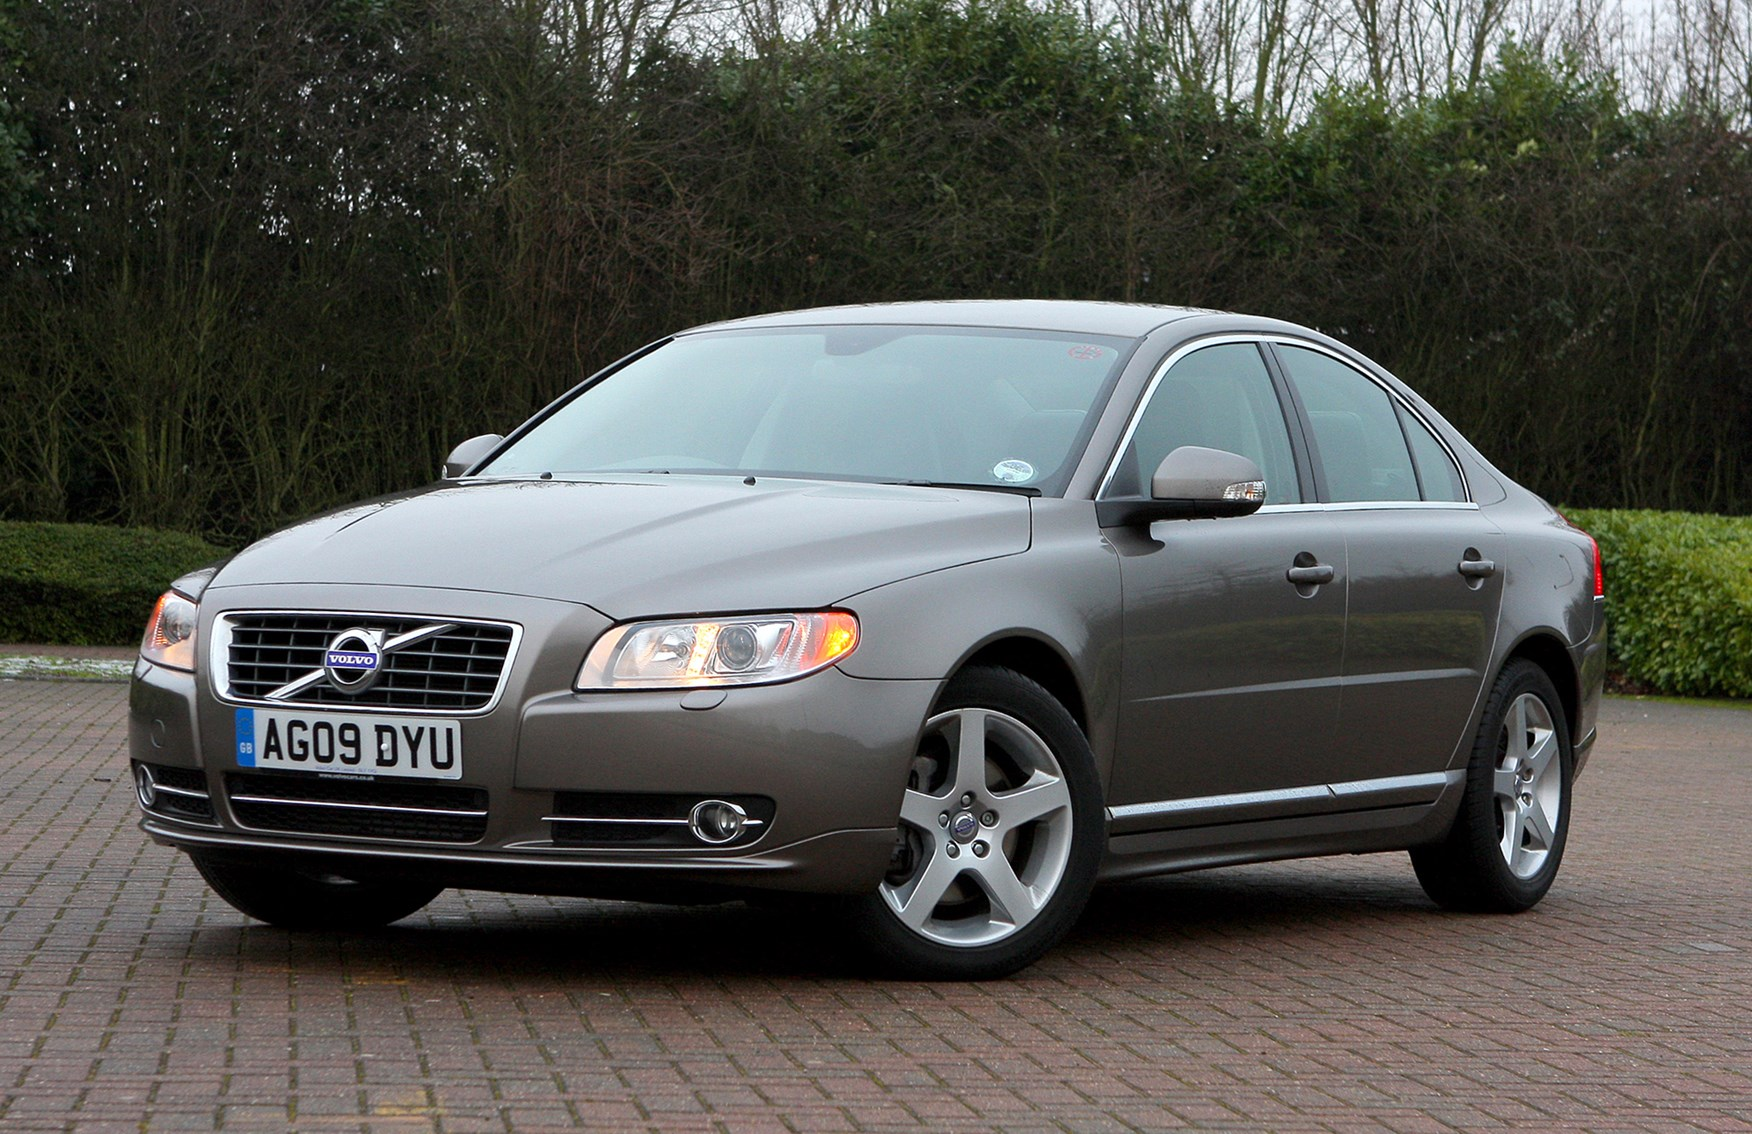 volvo s80 saloon review 2006 2016 parkers. Black Bedroom Furniture Sets. Home Design Ideas